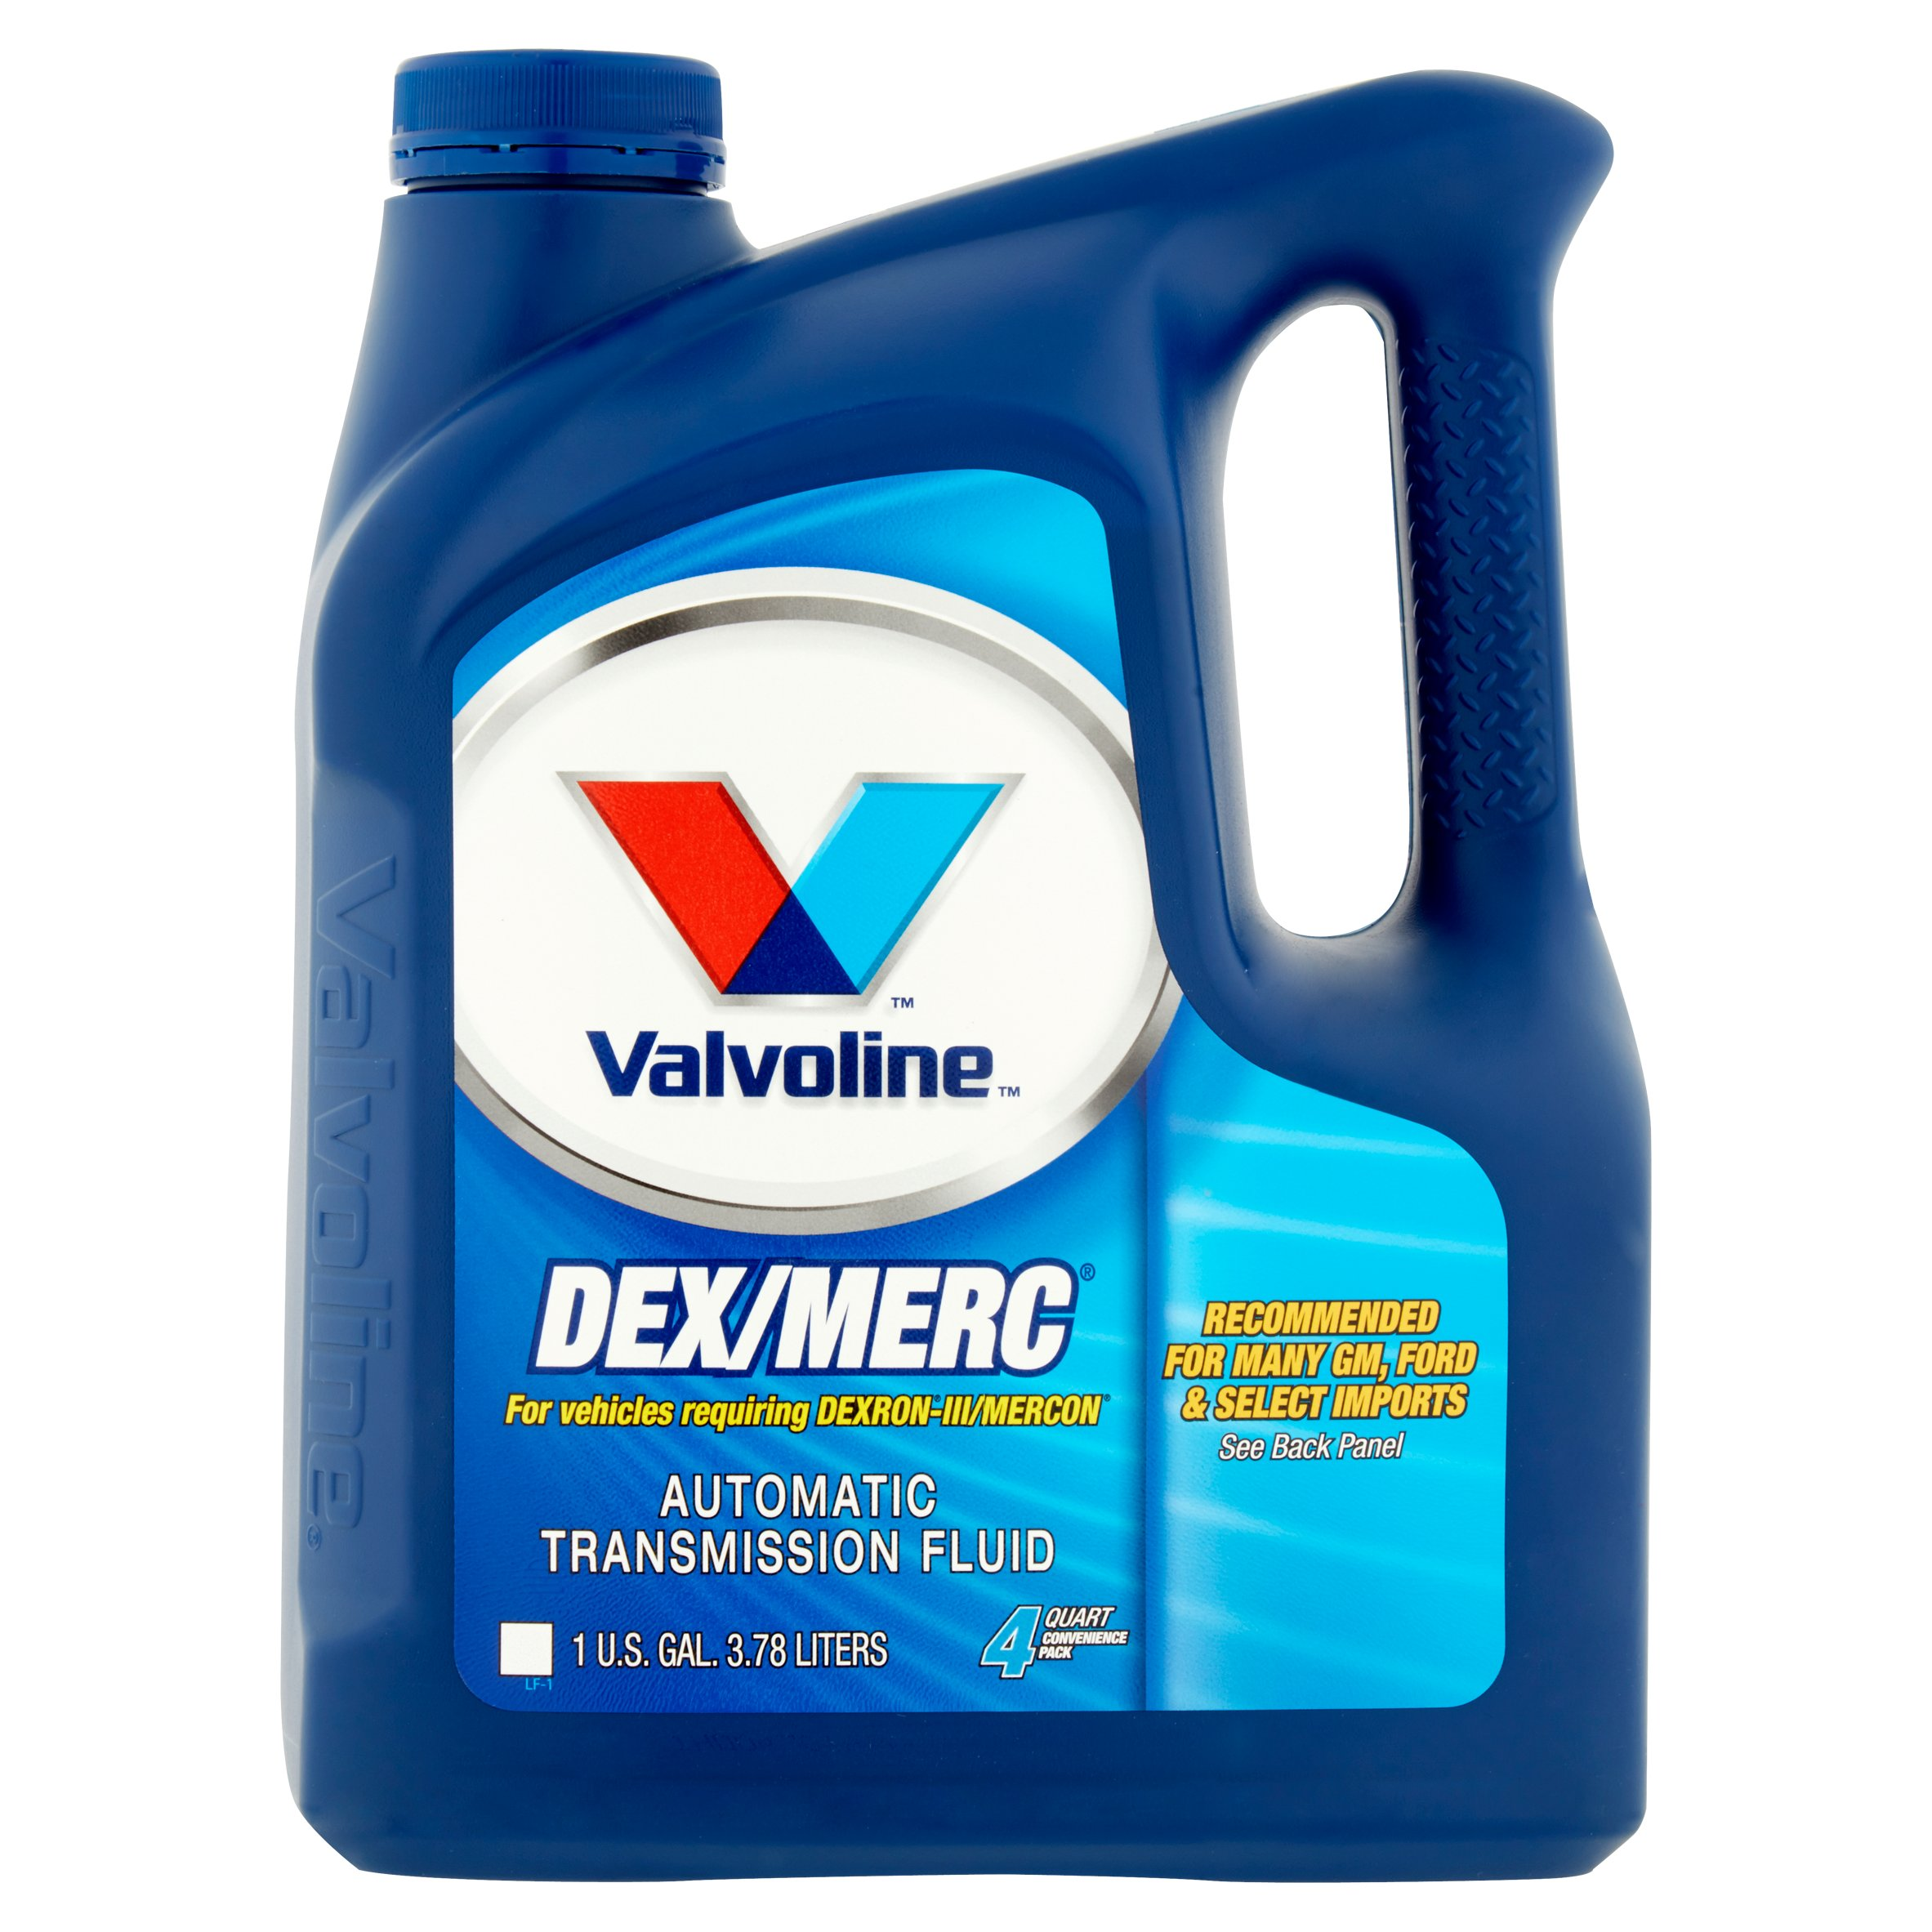 Valvoline DEX/MERC Automatic Transmission Fluid 4 Quart Convenience Pack 1 gal.